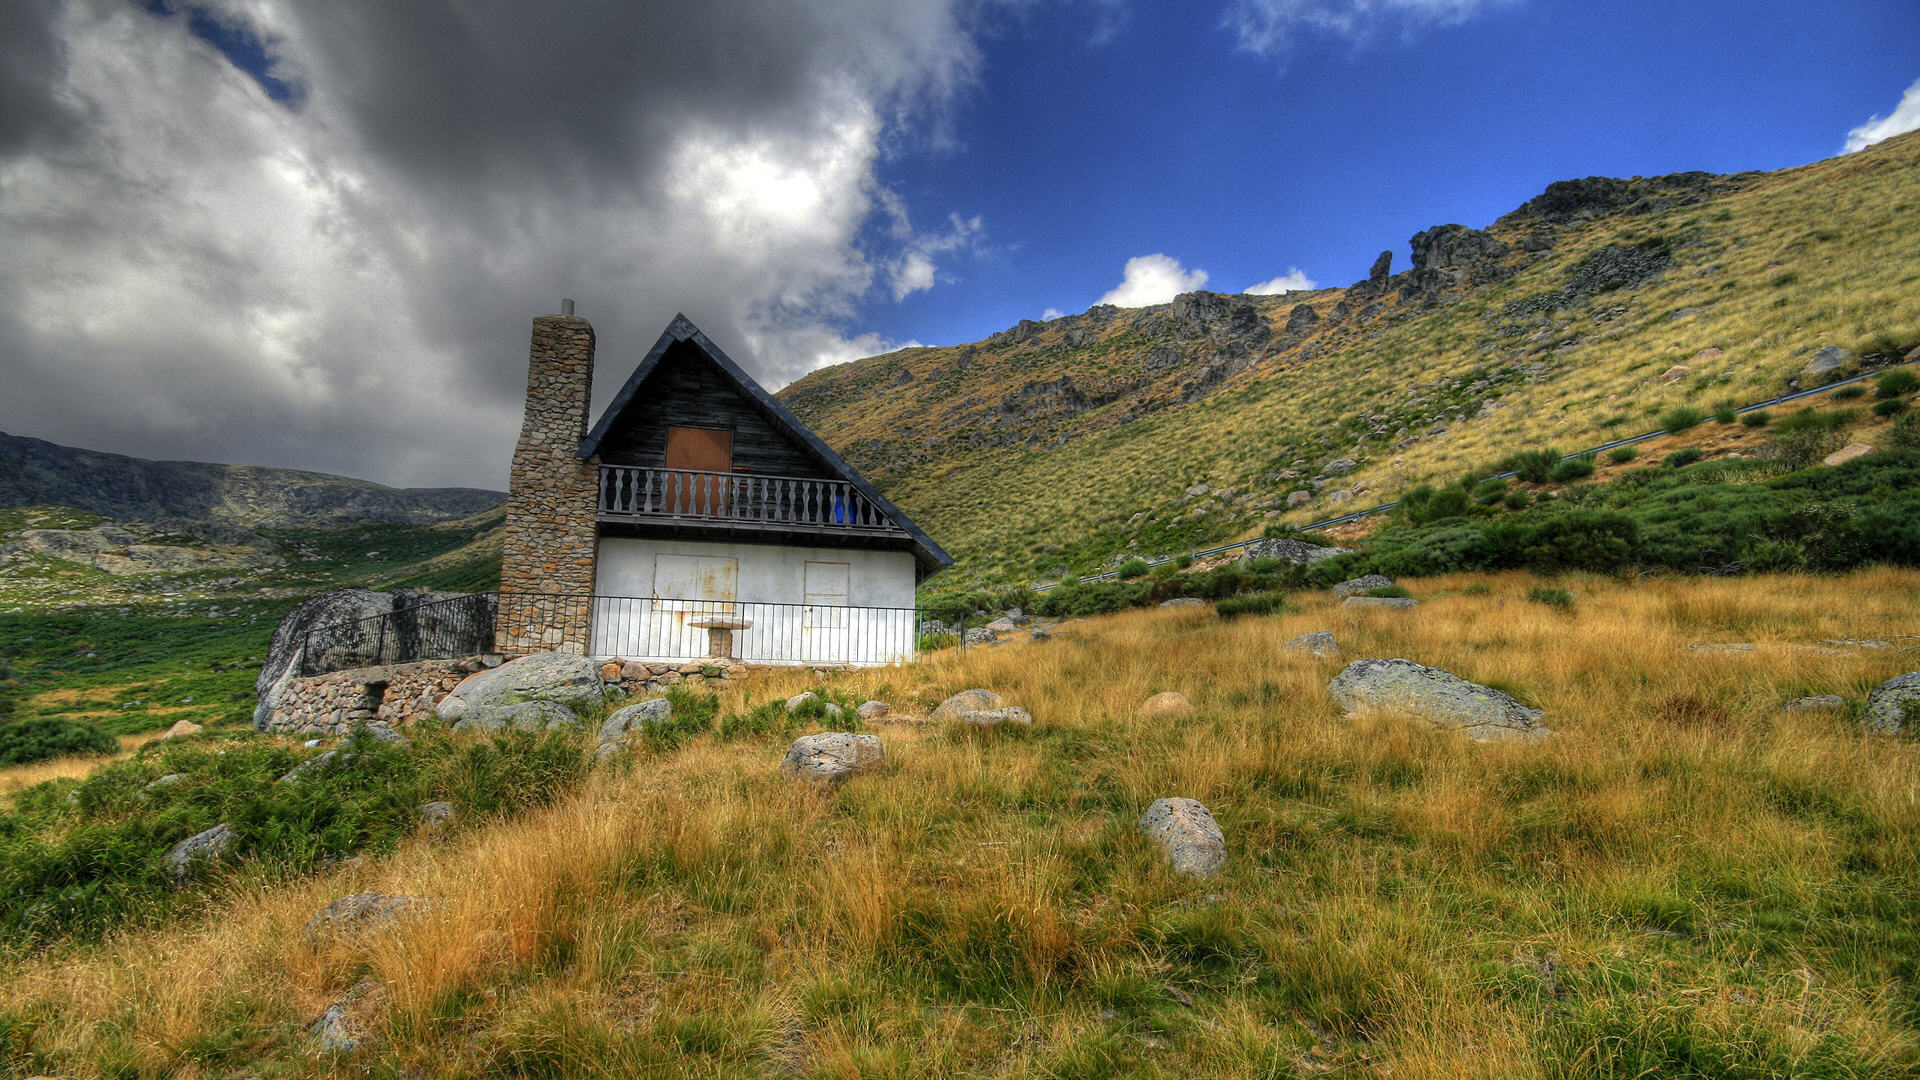 Mountain Cabin Wallpaper HD 1920x1080 5287 1920x1080